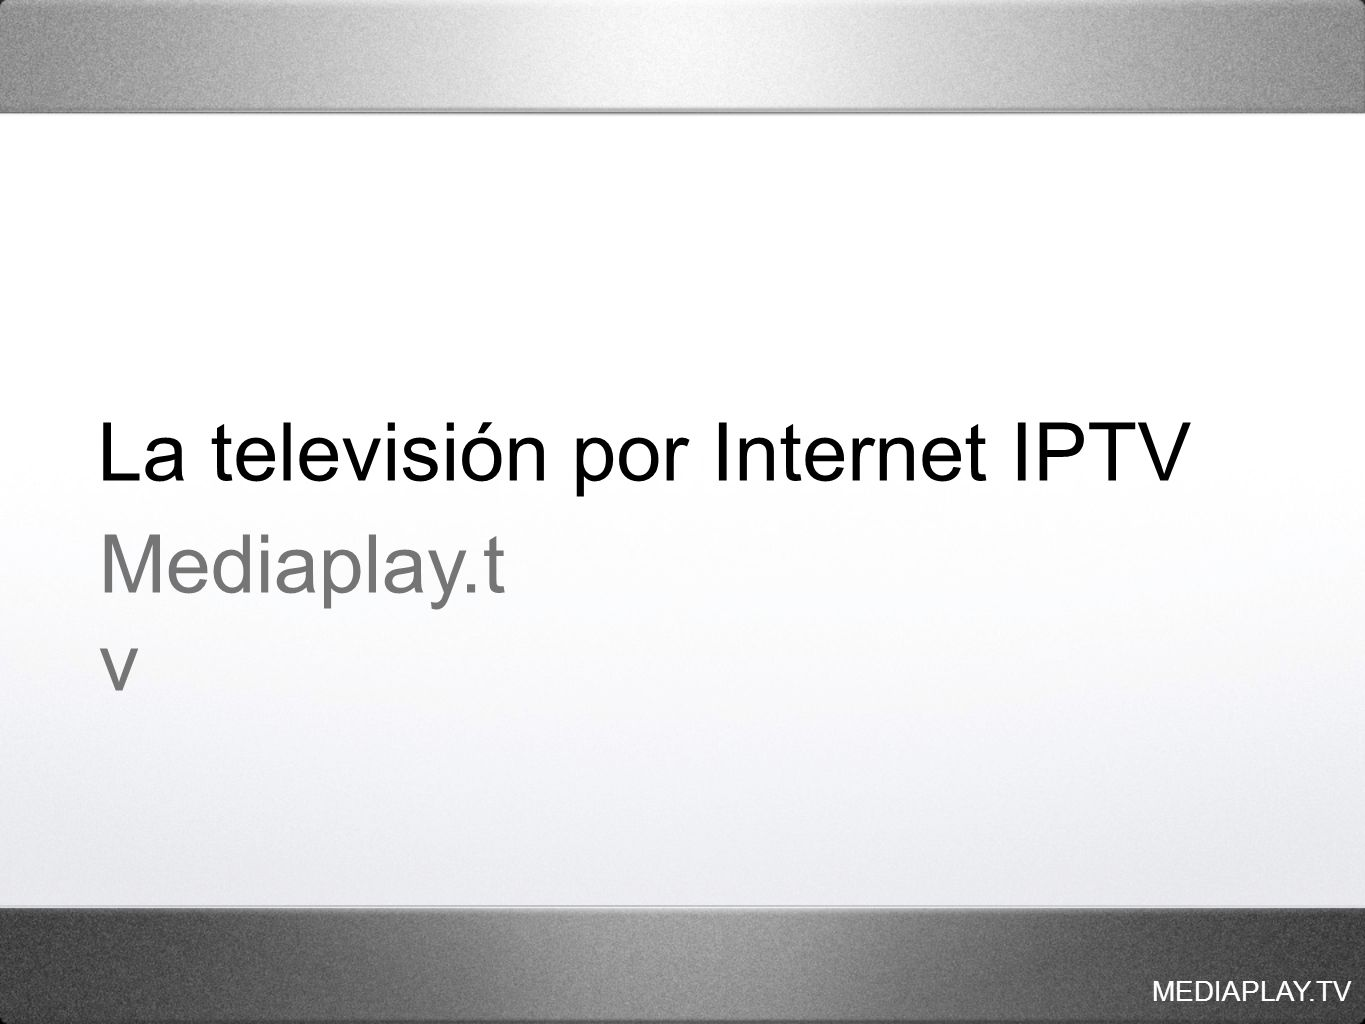 MEDIAPLAY.TV 2.